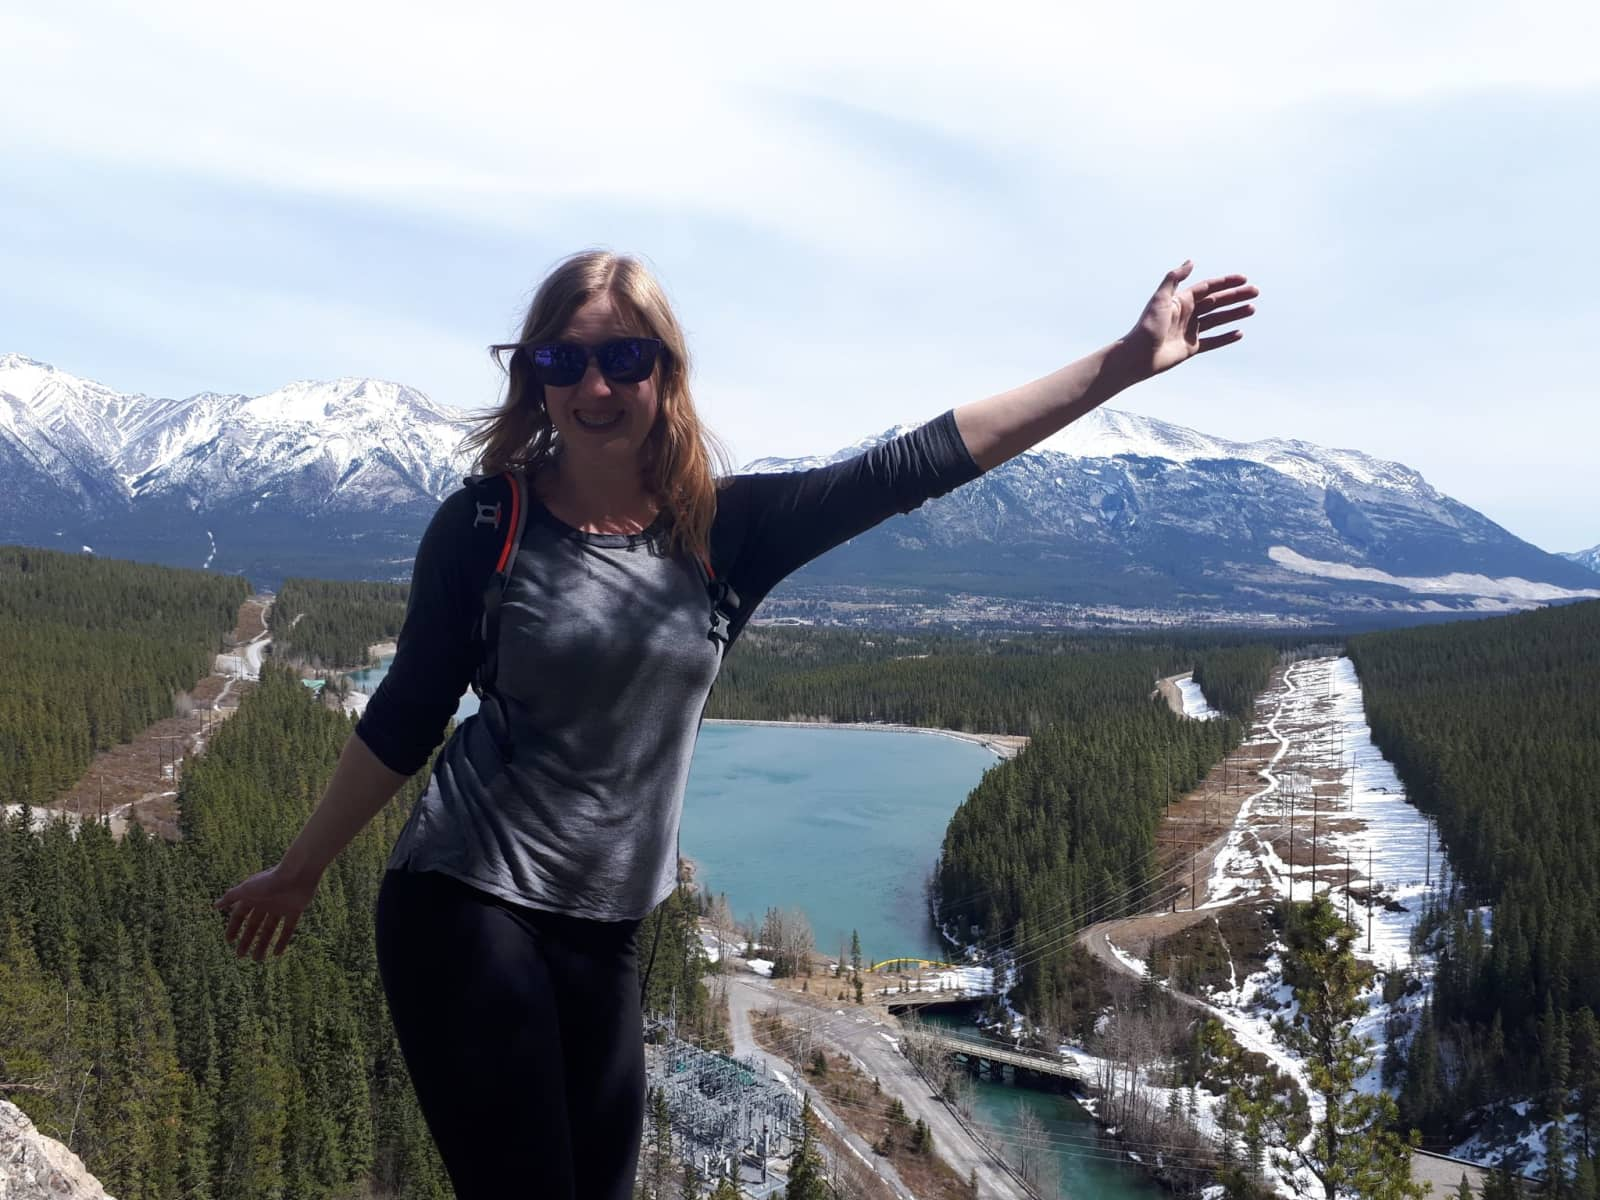 Alexis from Canmore, Alberta, Canada